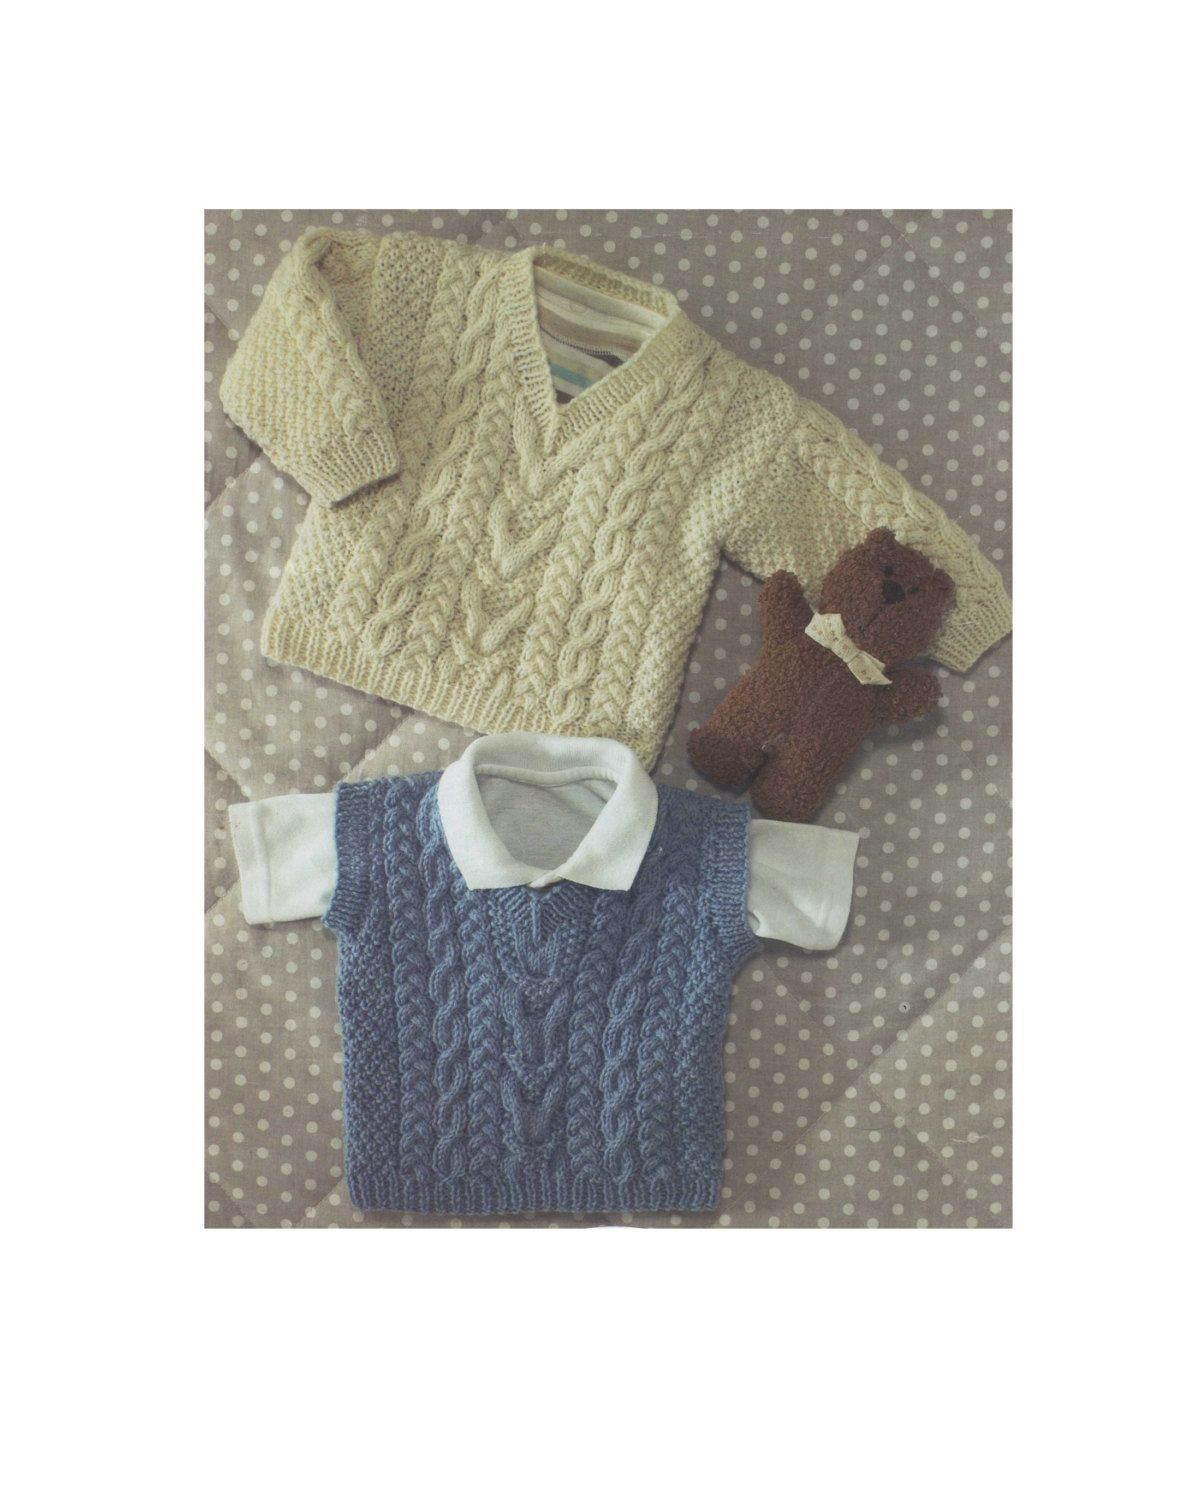 Childrens Sweater and Pullover Knitting Pattern PDF Boys or Girls, Babies and Toddlers 16, 18, 20, 22, 24, 26 & 28 inch chest #children'ssweaters